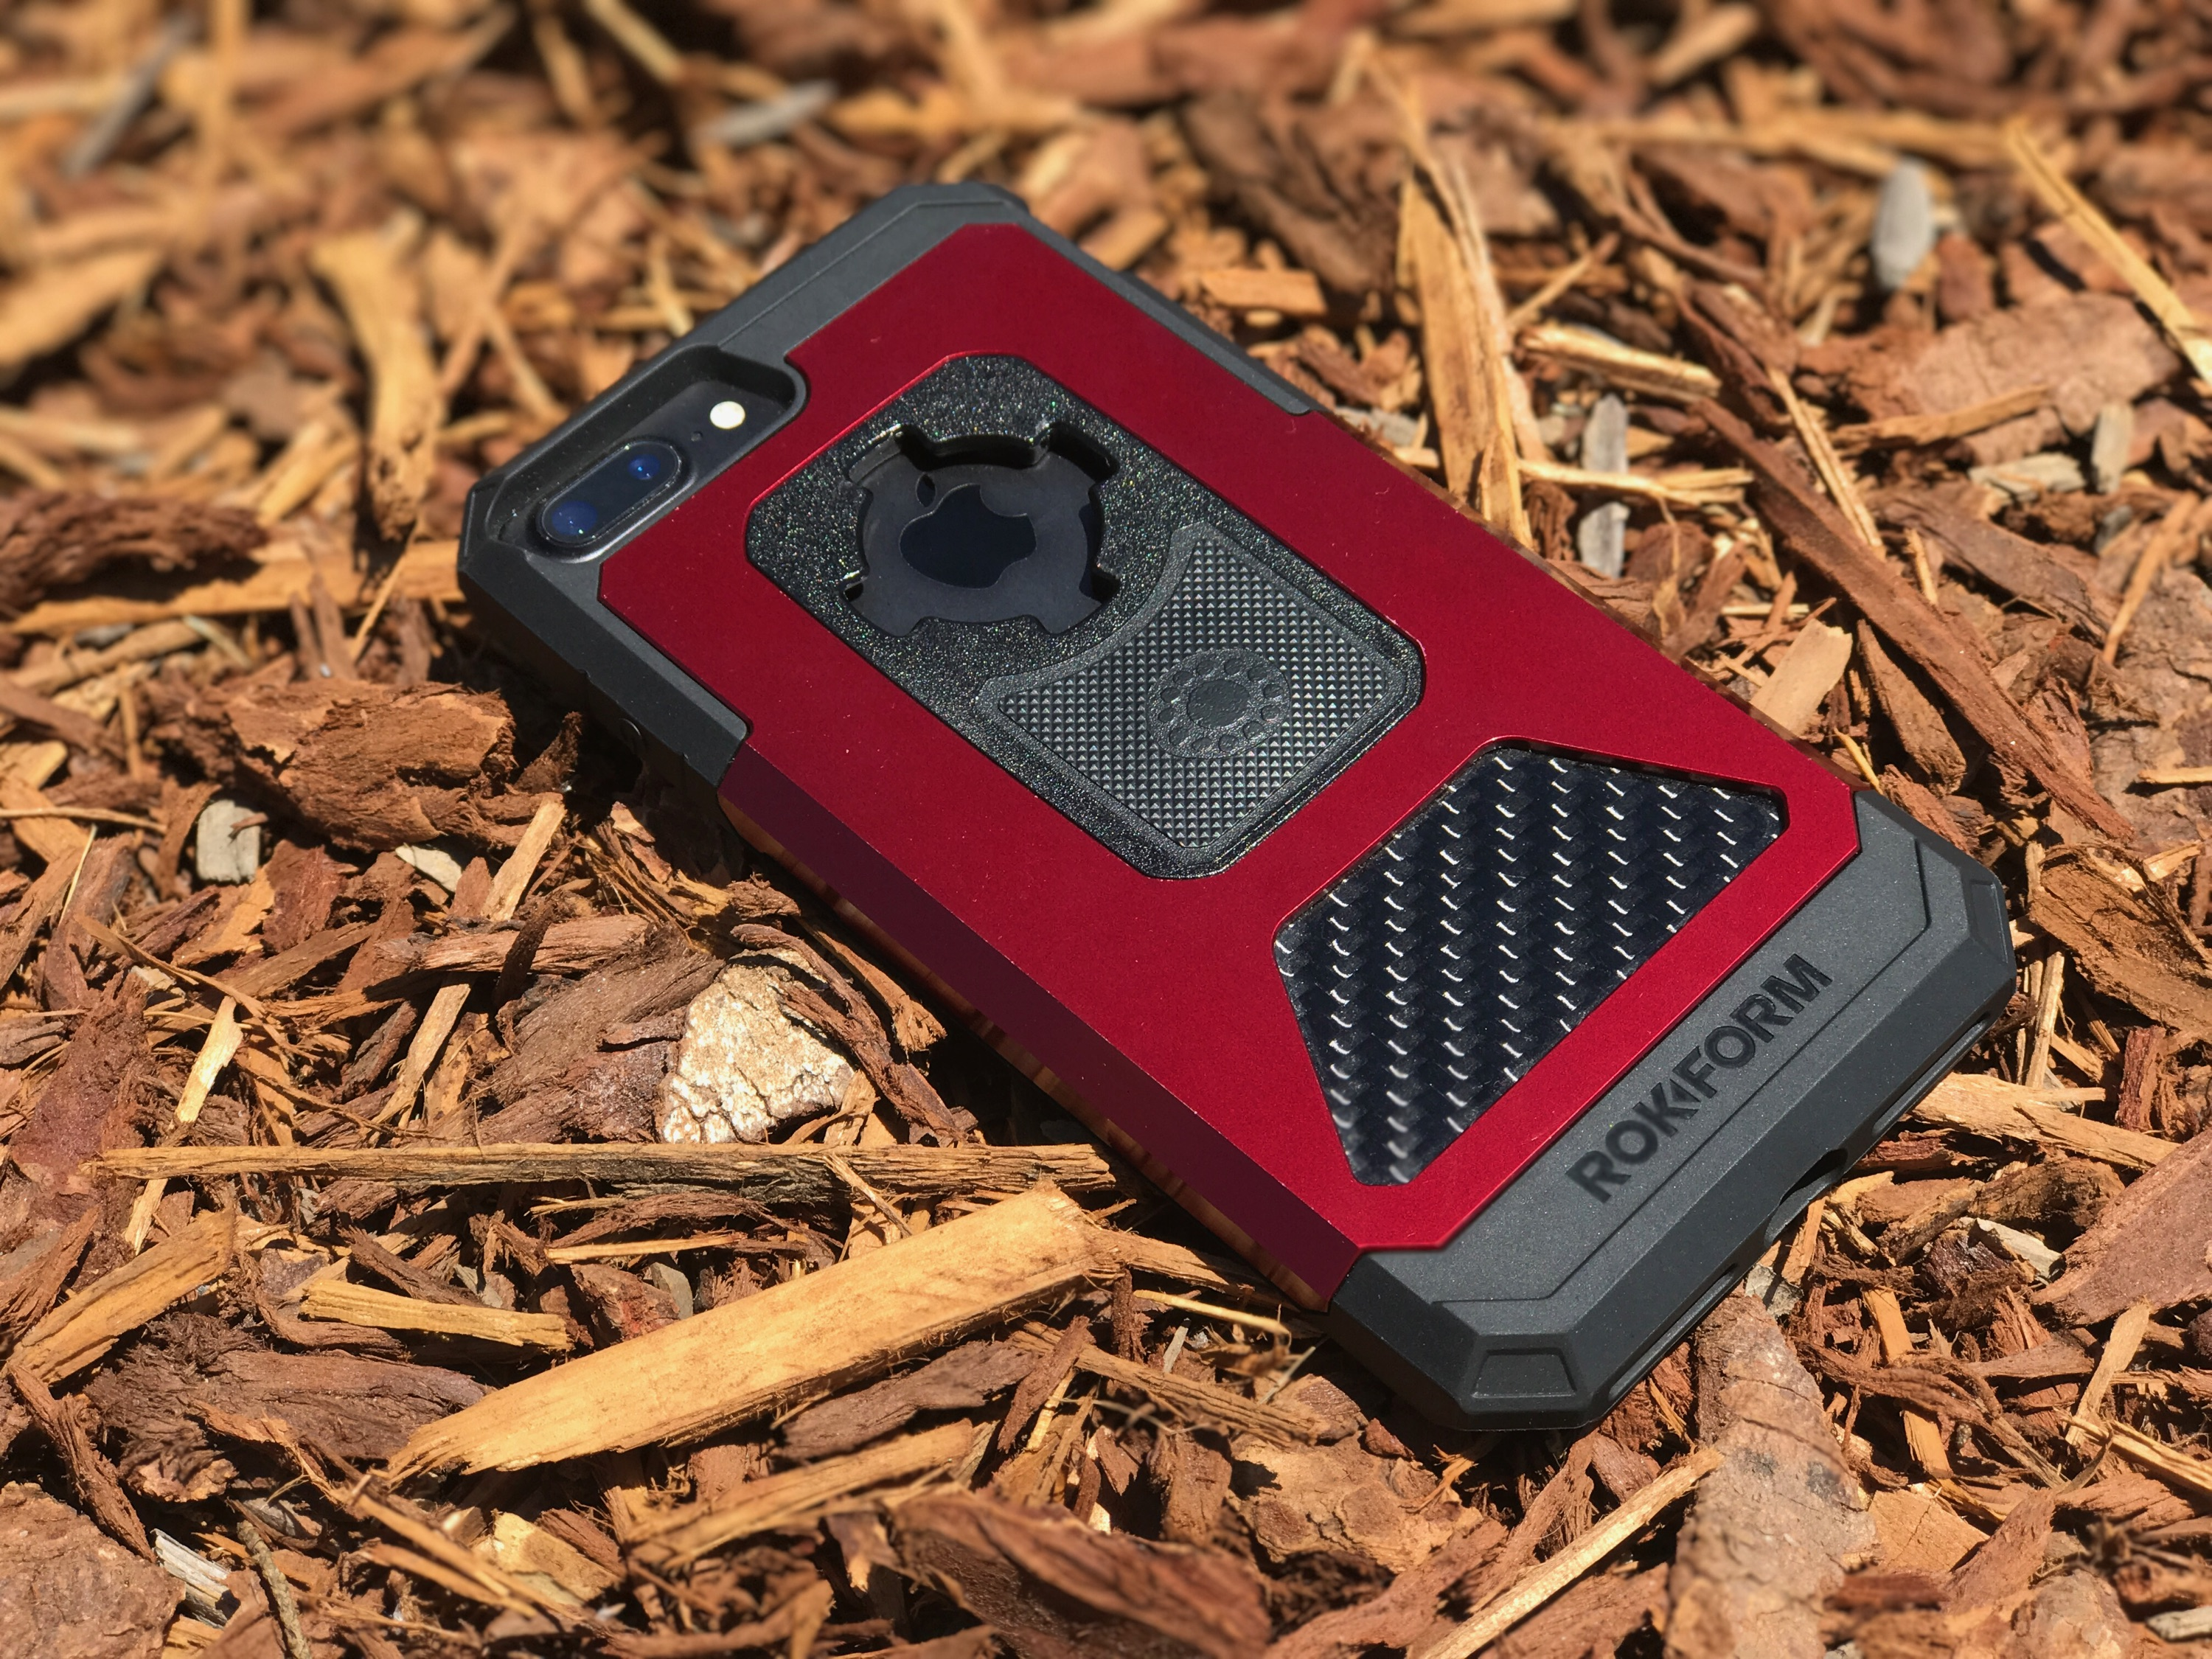 rokform iphone 7 plus rugged case